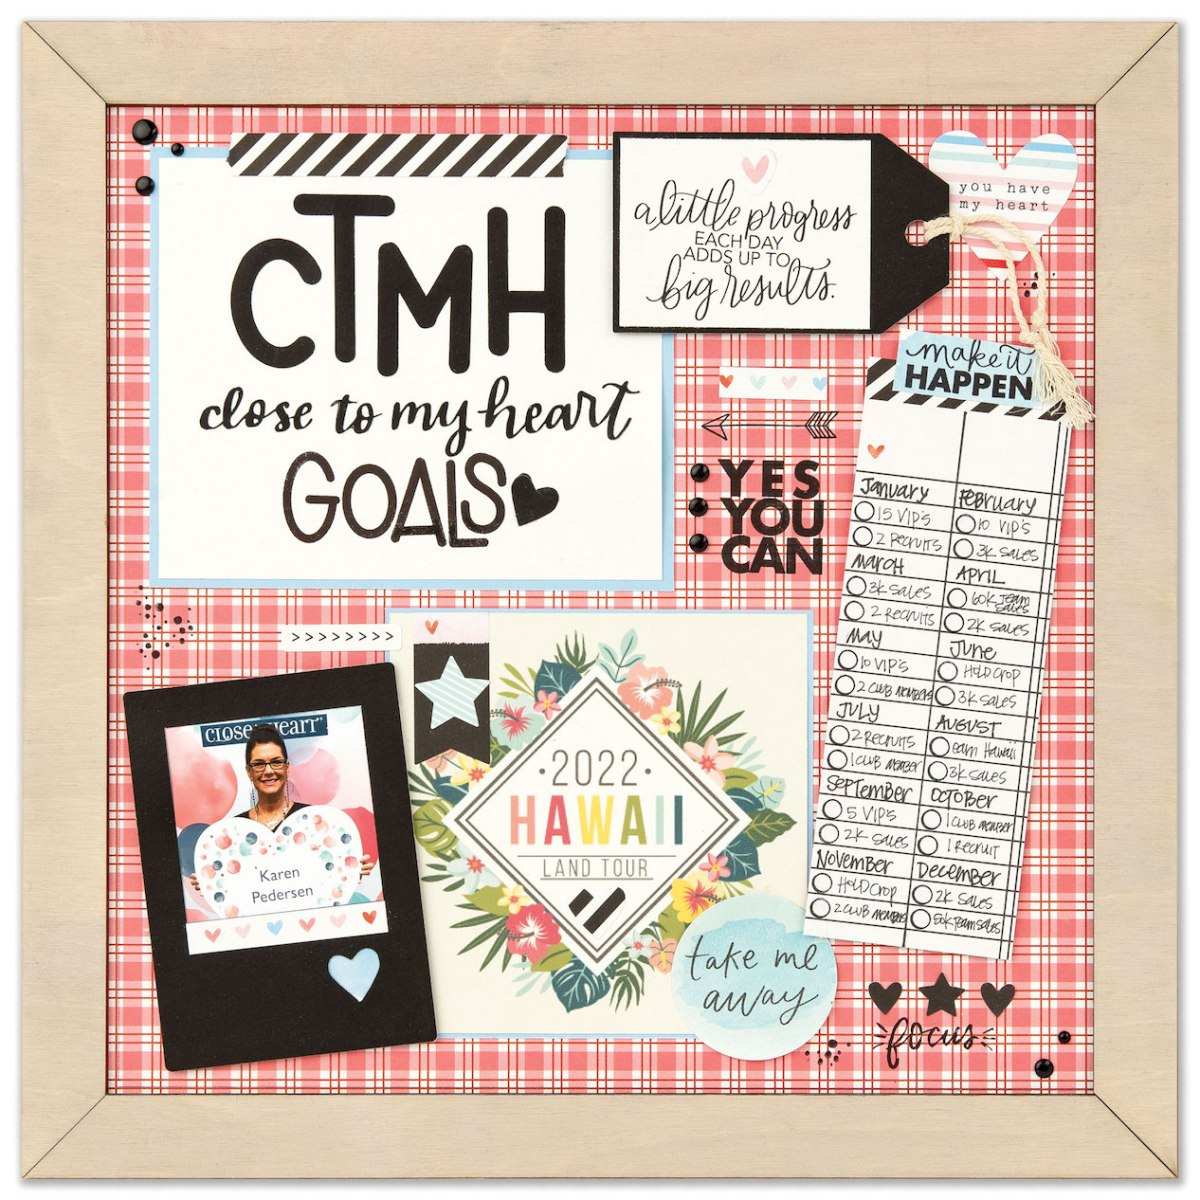 Vision Boards for Intentional Living #ctmh #closetomyheart #ctmhhomesweethome #visionboards #goals #inspiration #newyeargoals #ctmhgoals #makeithappen